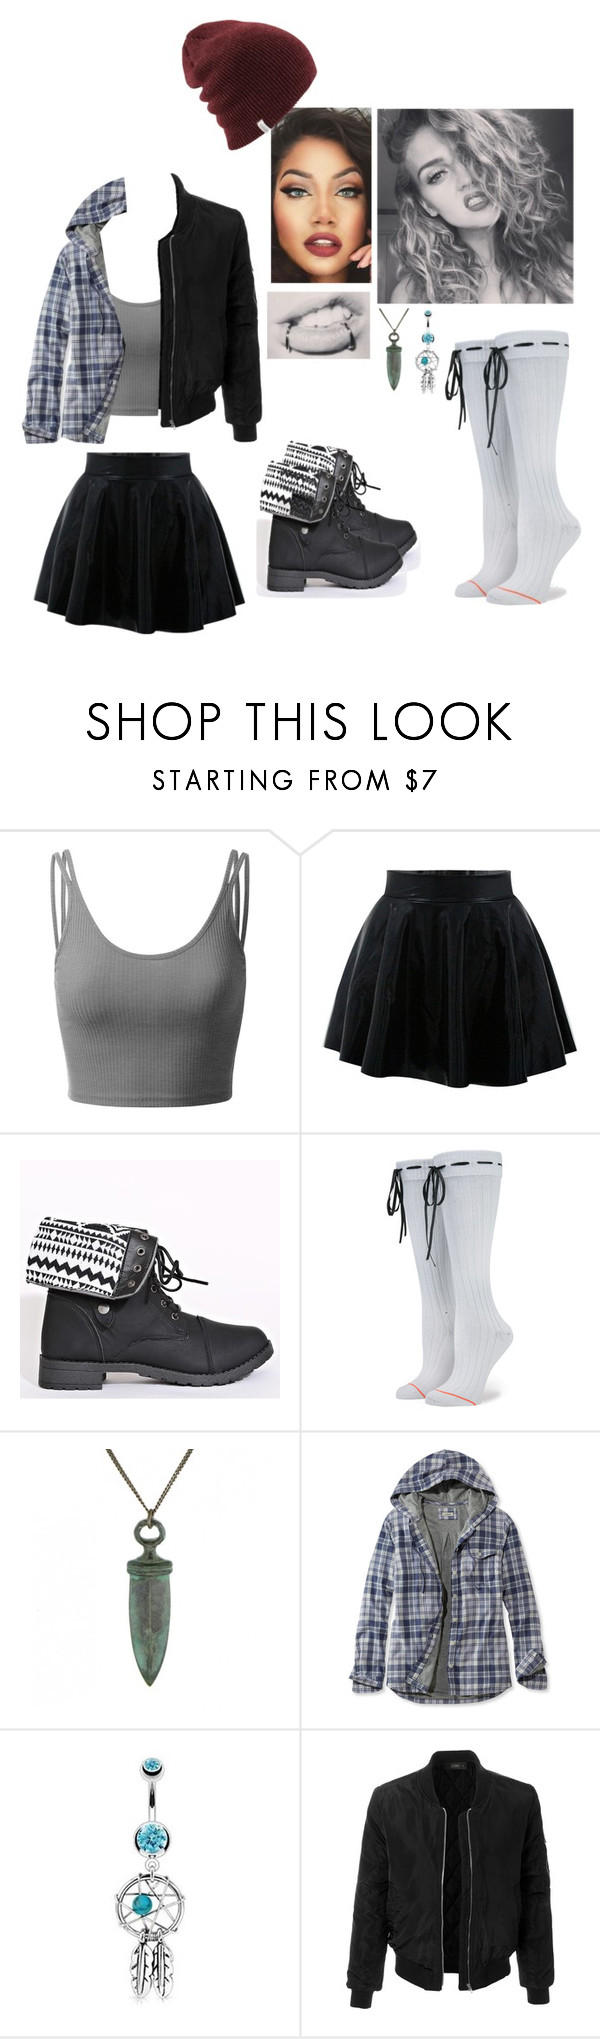 """""""Untitled #593"""" by kyranfisher18 ❤ liked on Polyvore featuring Doublju, Ornamental Things, L.L.Bean, Bling Jewelry and LE3NO"""